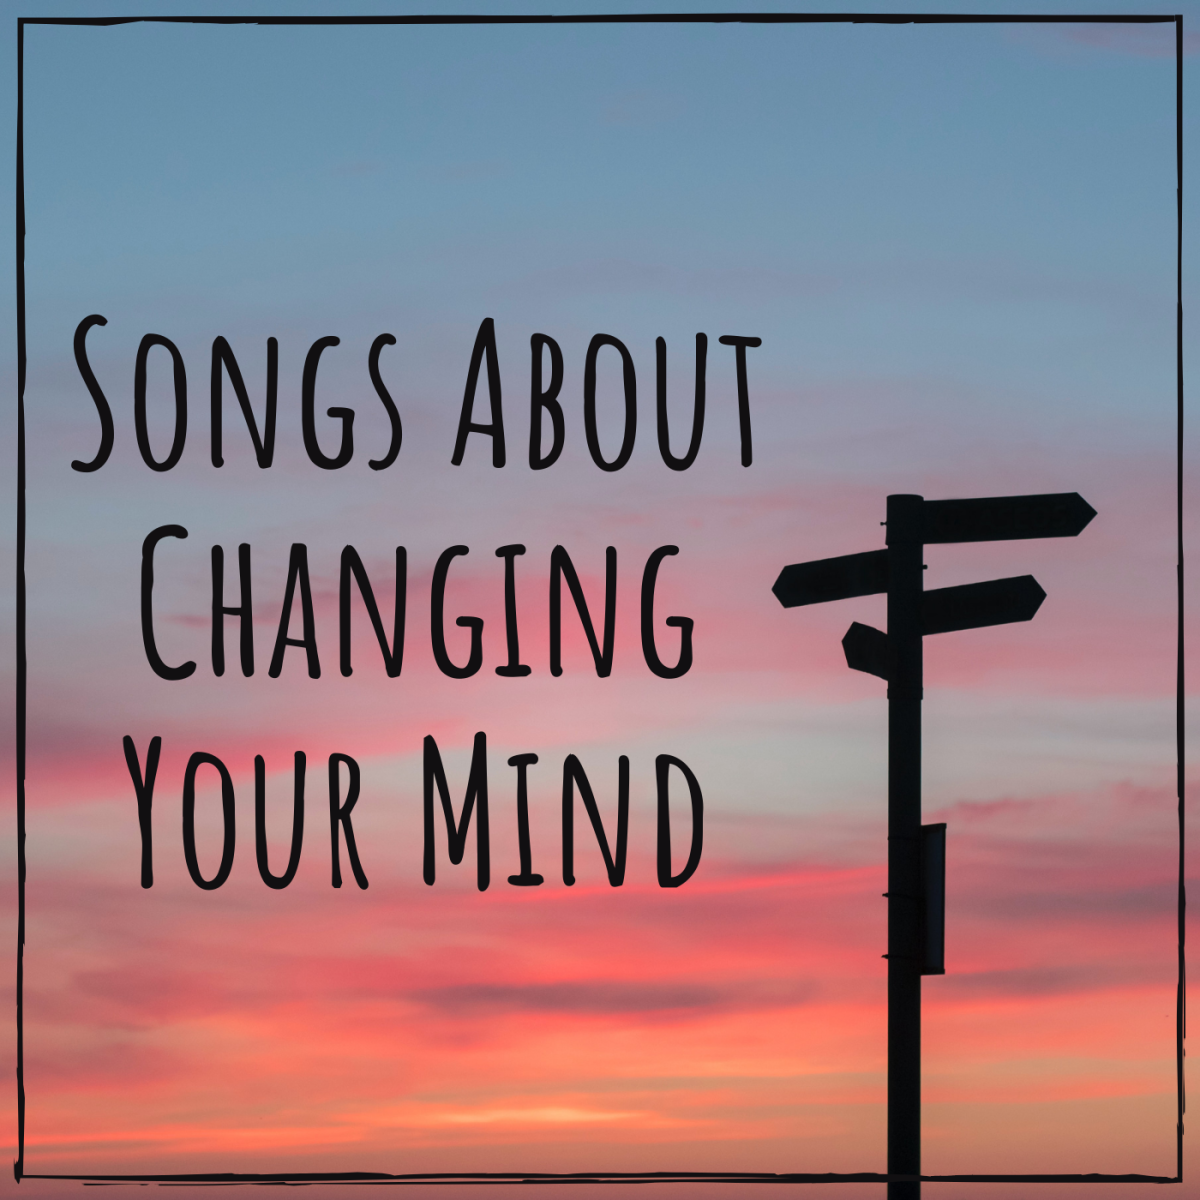 Celebrate the freedom to change your mind in work, love, and how you live your life. Create a playlist of pop, rock, and country songs about changing your mind.